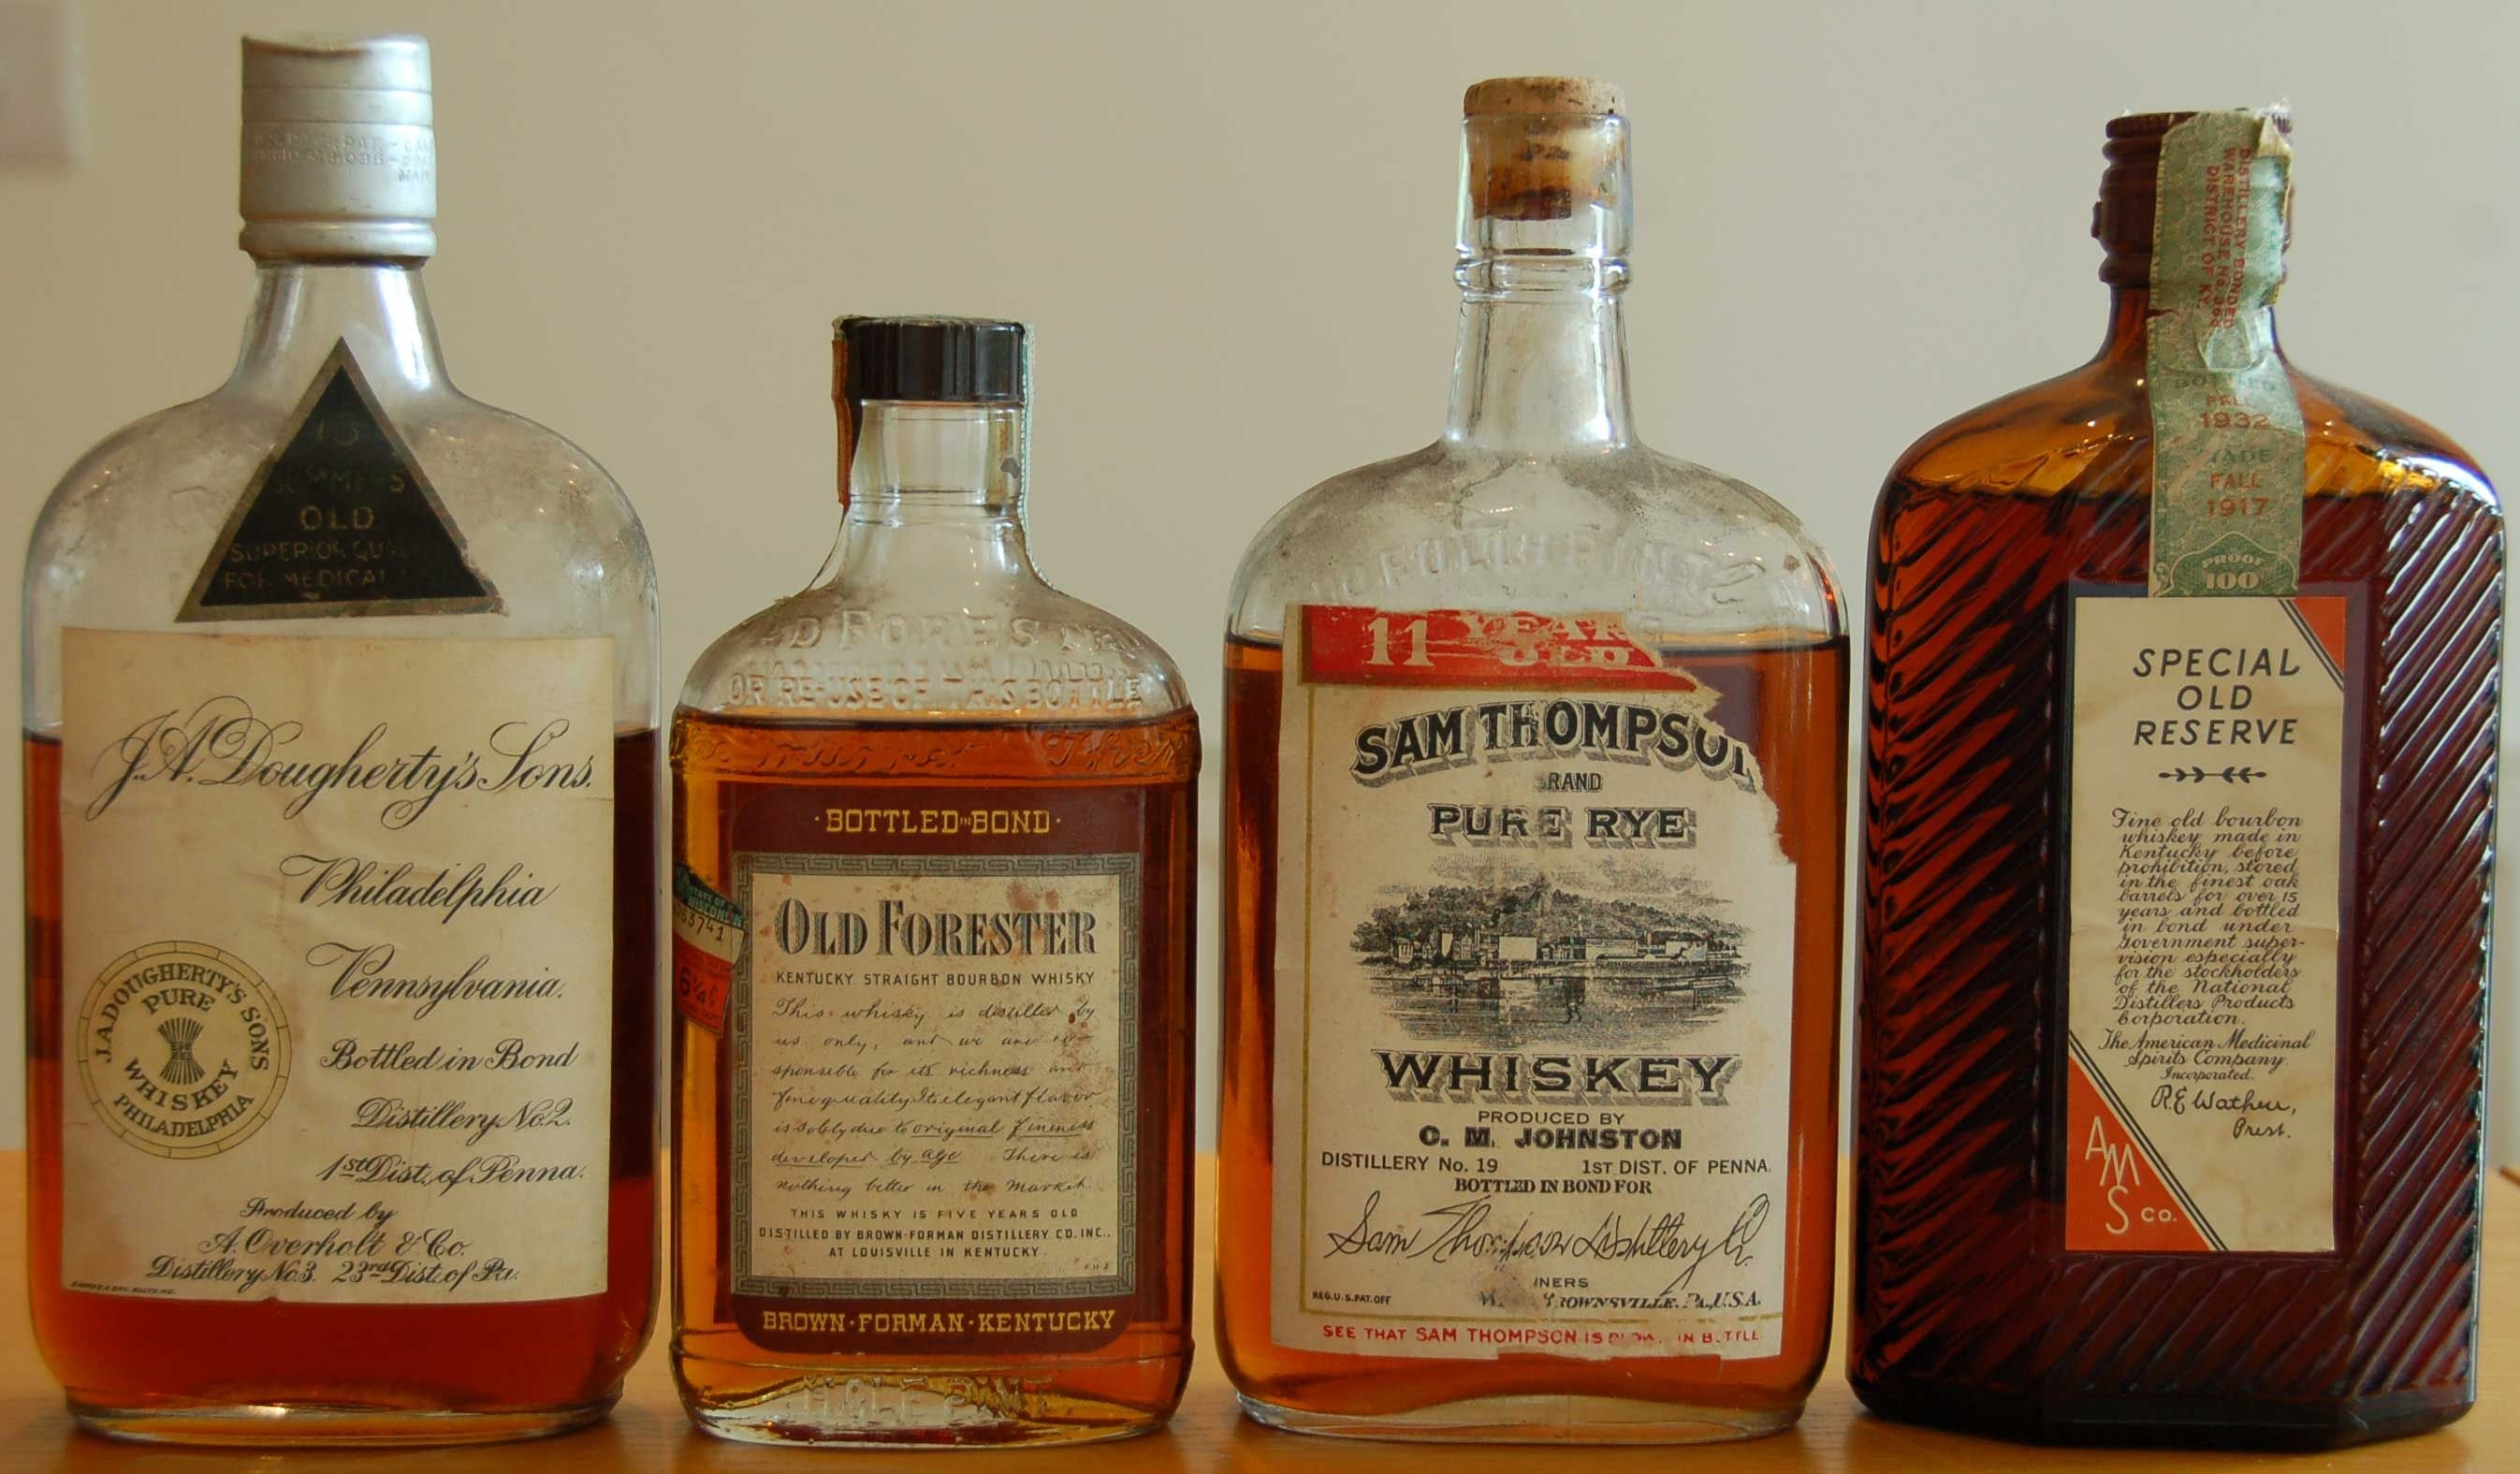 dating old forester bottles and brushes